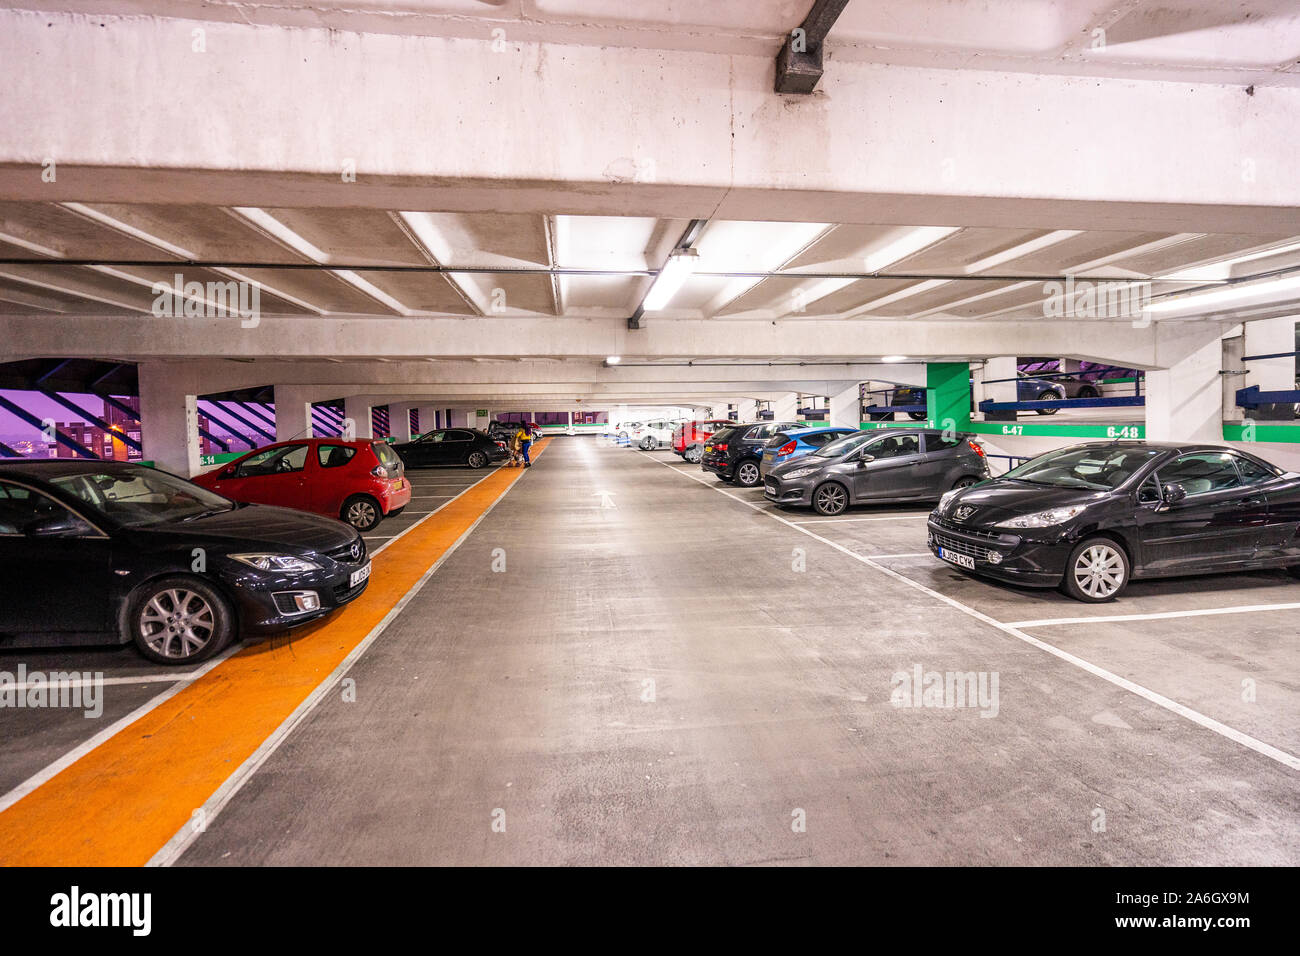 The multi storey car park, parking garage for the Intu Potteries Shopping Centre, Precinct, mall in the city centre Stock Photo